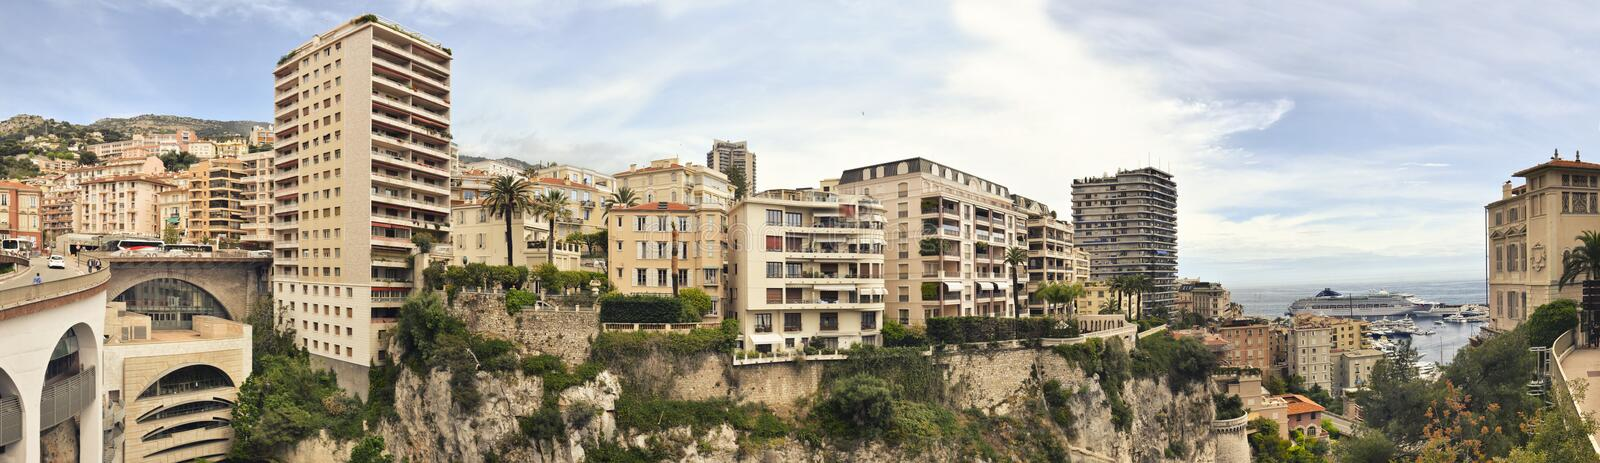 Panoramic photograph of principality of Monaco. Panoramic photograph of Monte Carlo royalty free stock photos